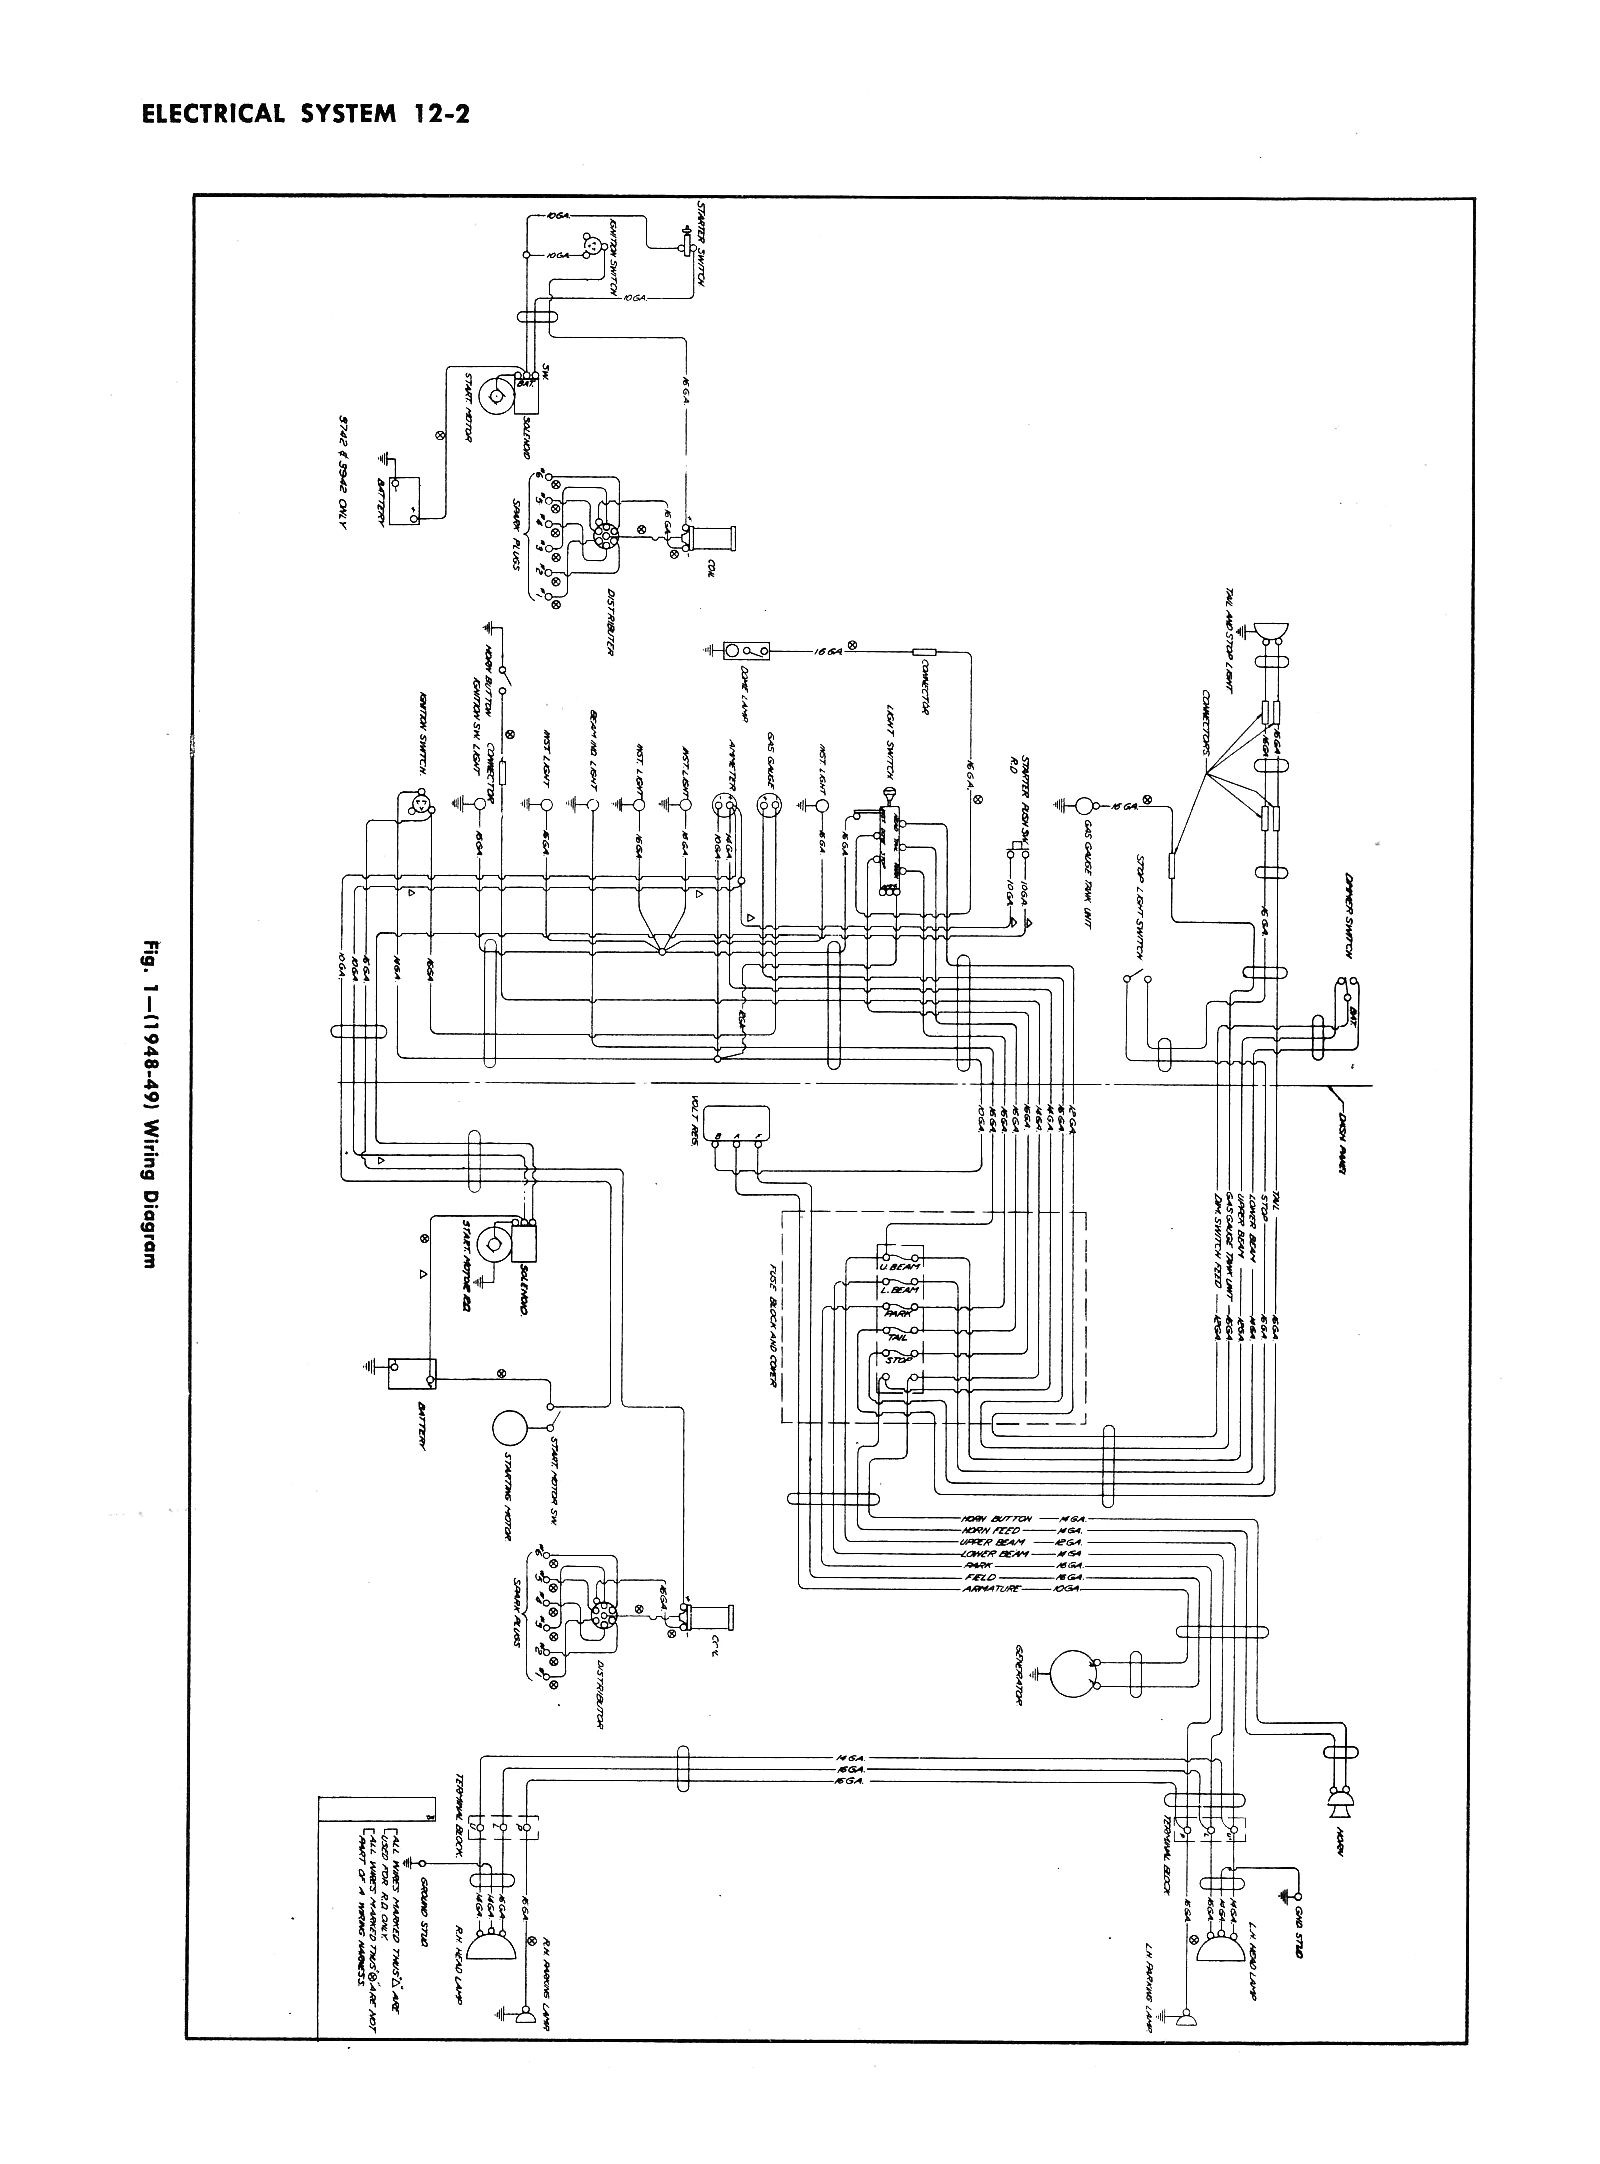 Wiring Harness For 1951 Chevy Truck : F wiring harness diagram images